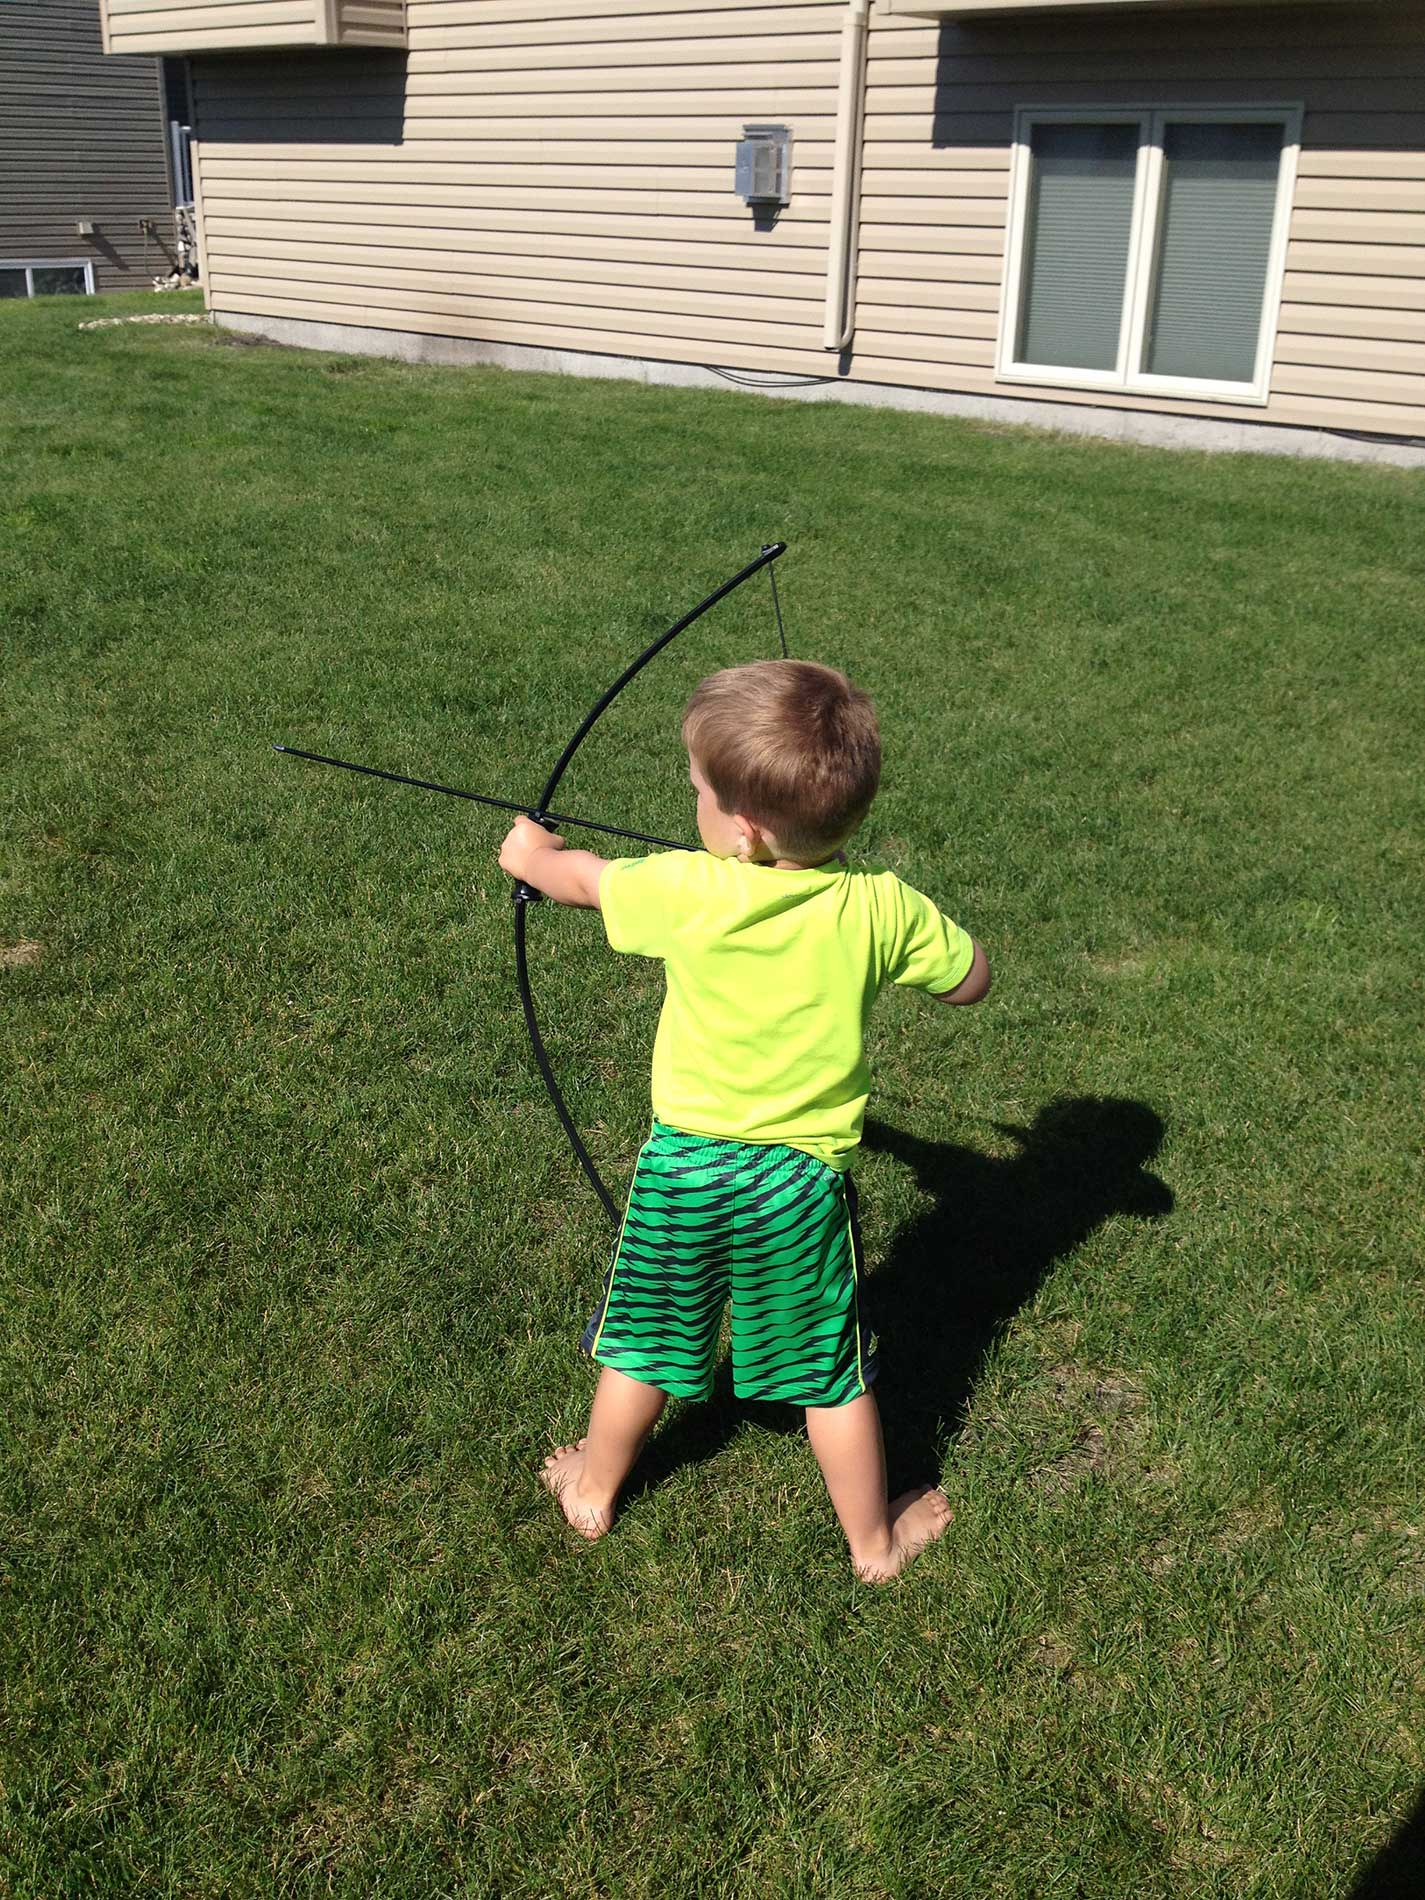 Reese practicing shooting his bow in the backyard at the age of three.